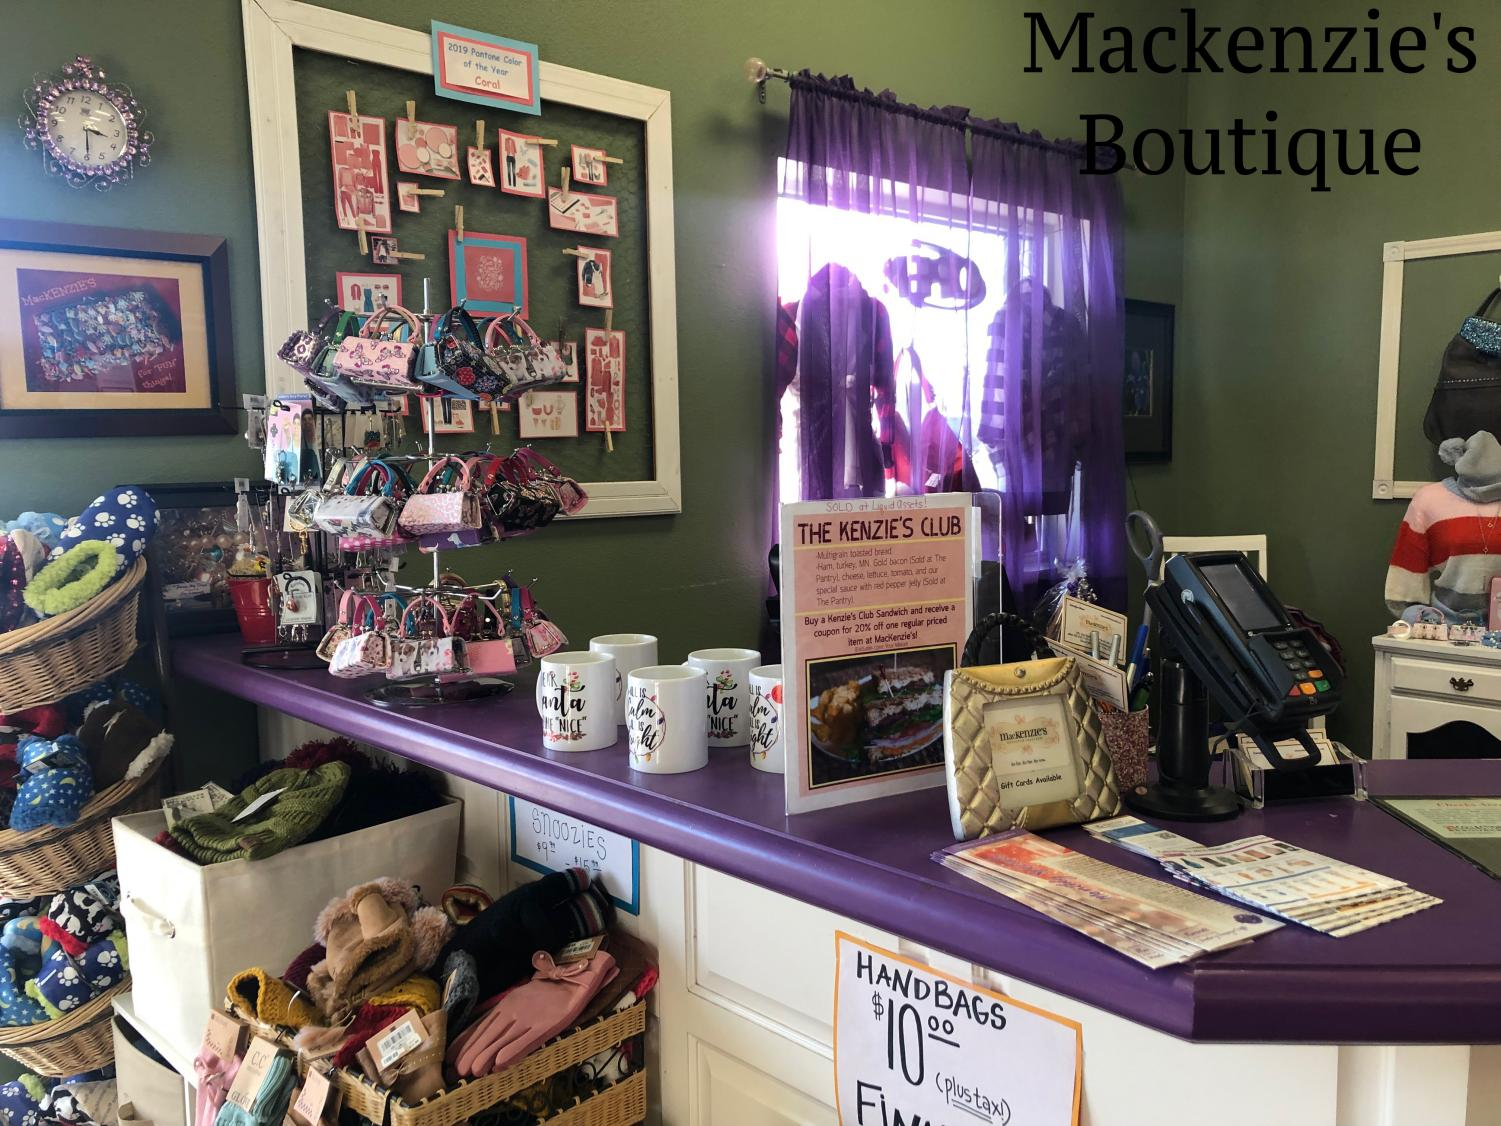 Mackenzie's offers a wide selection of accessories that satisfy every need.